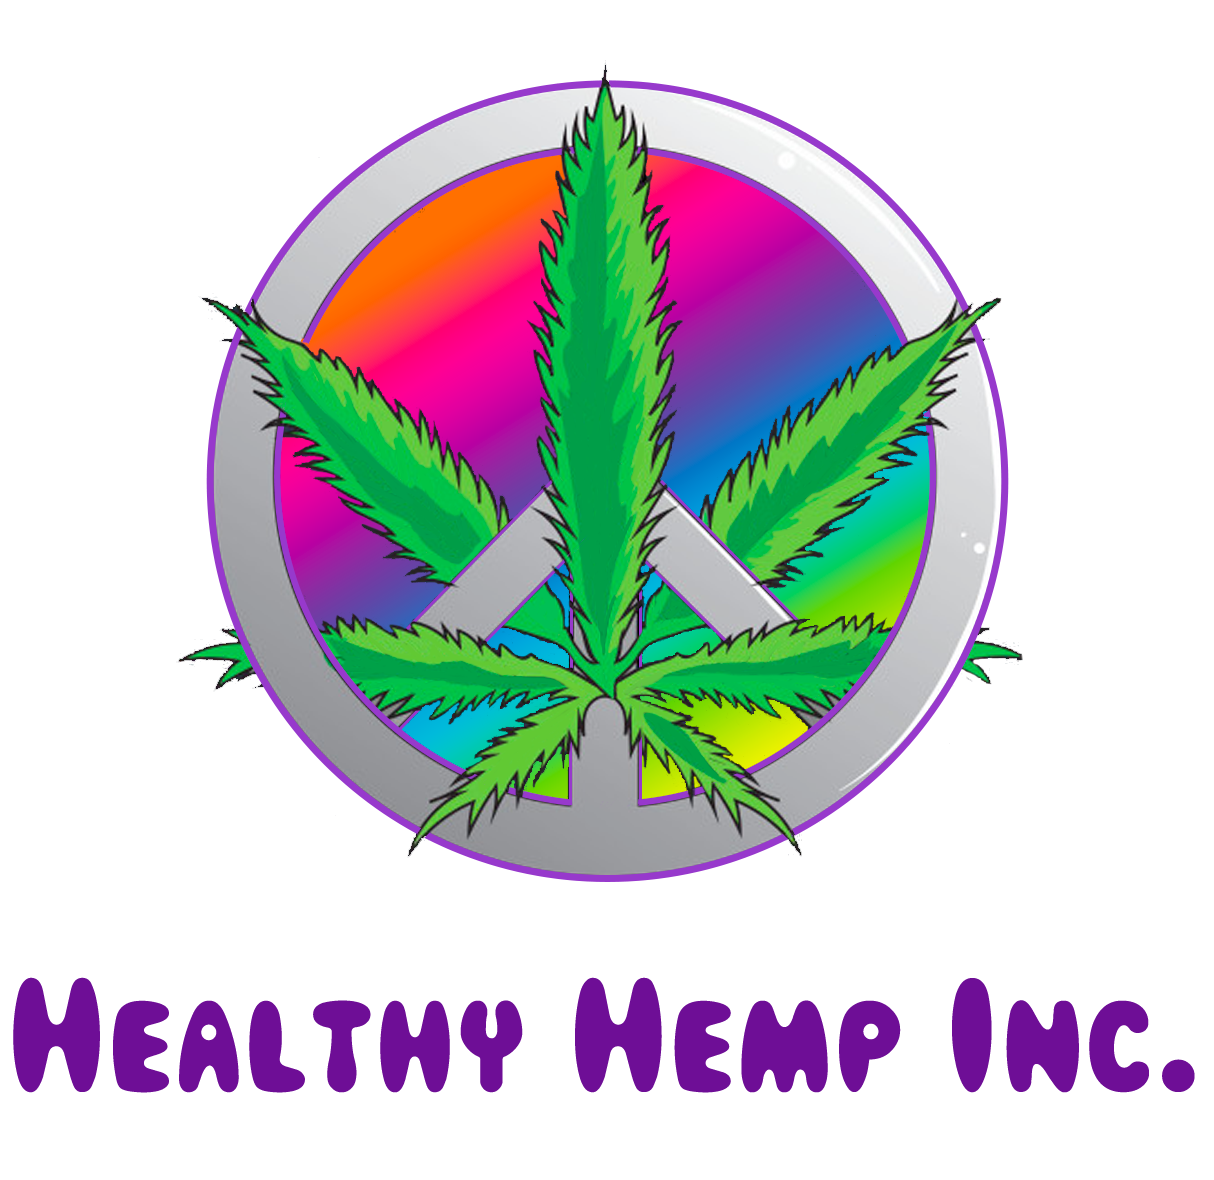 Healthy Hemp Inc